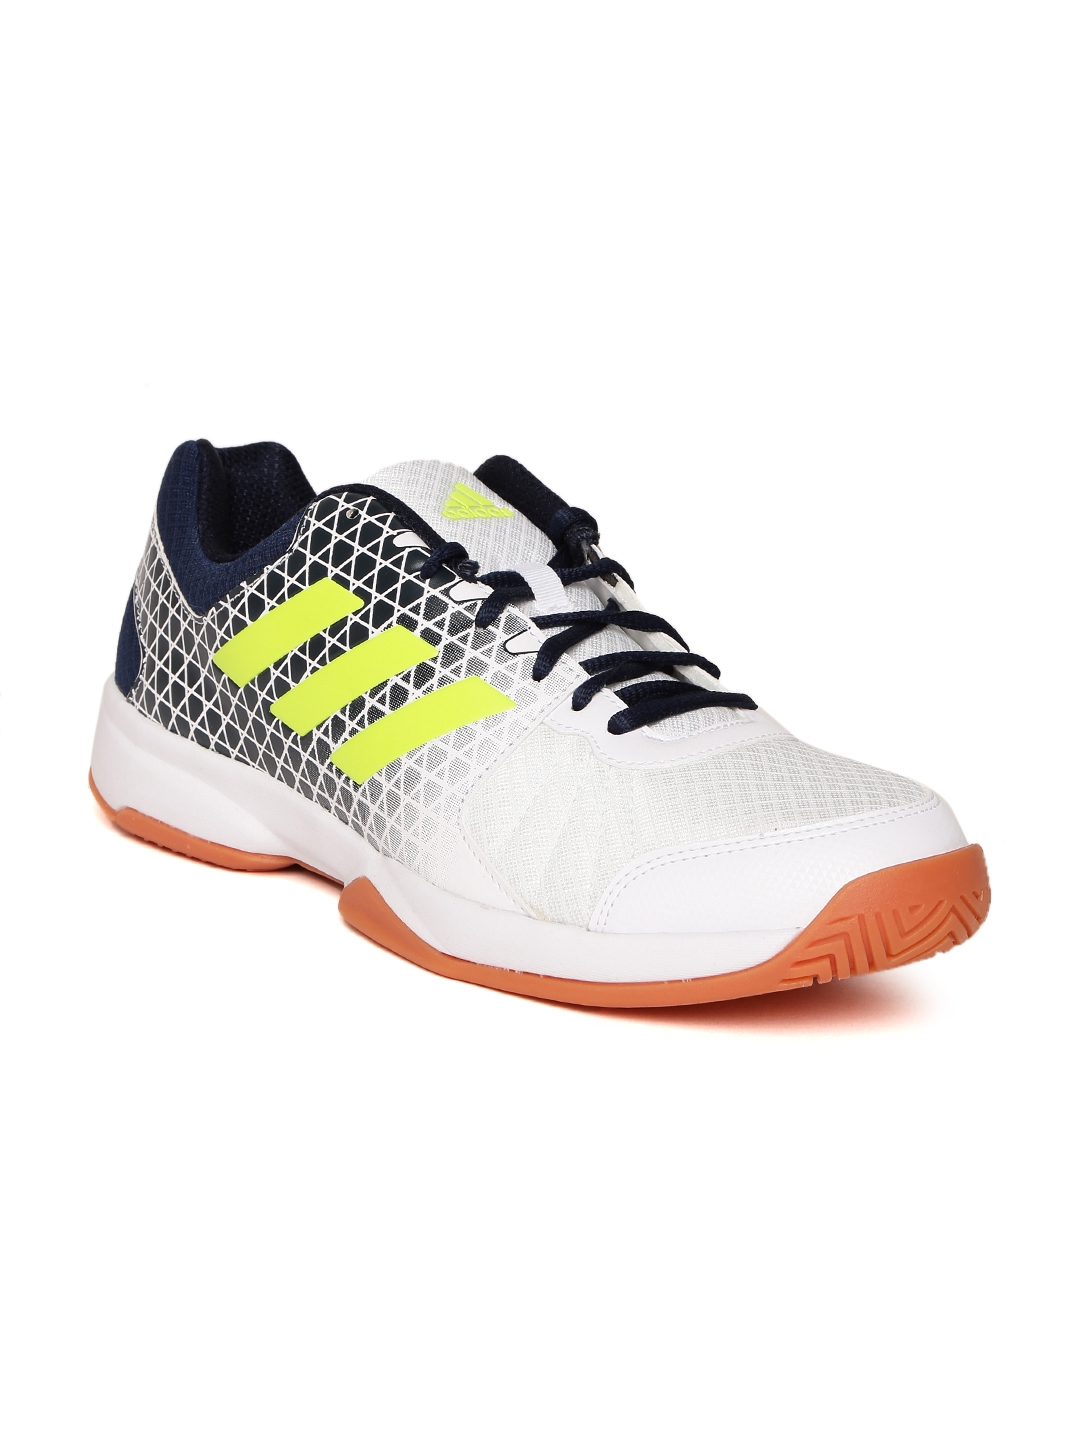 New Redefine your tennis shoes in this stylish yet supportive option ideal to wear Live Chat Support · Guaranteed Lowest Prices · Free Returns & Exchanges.